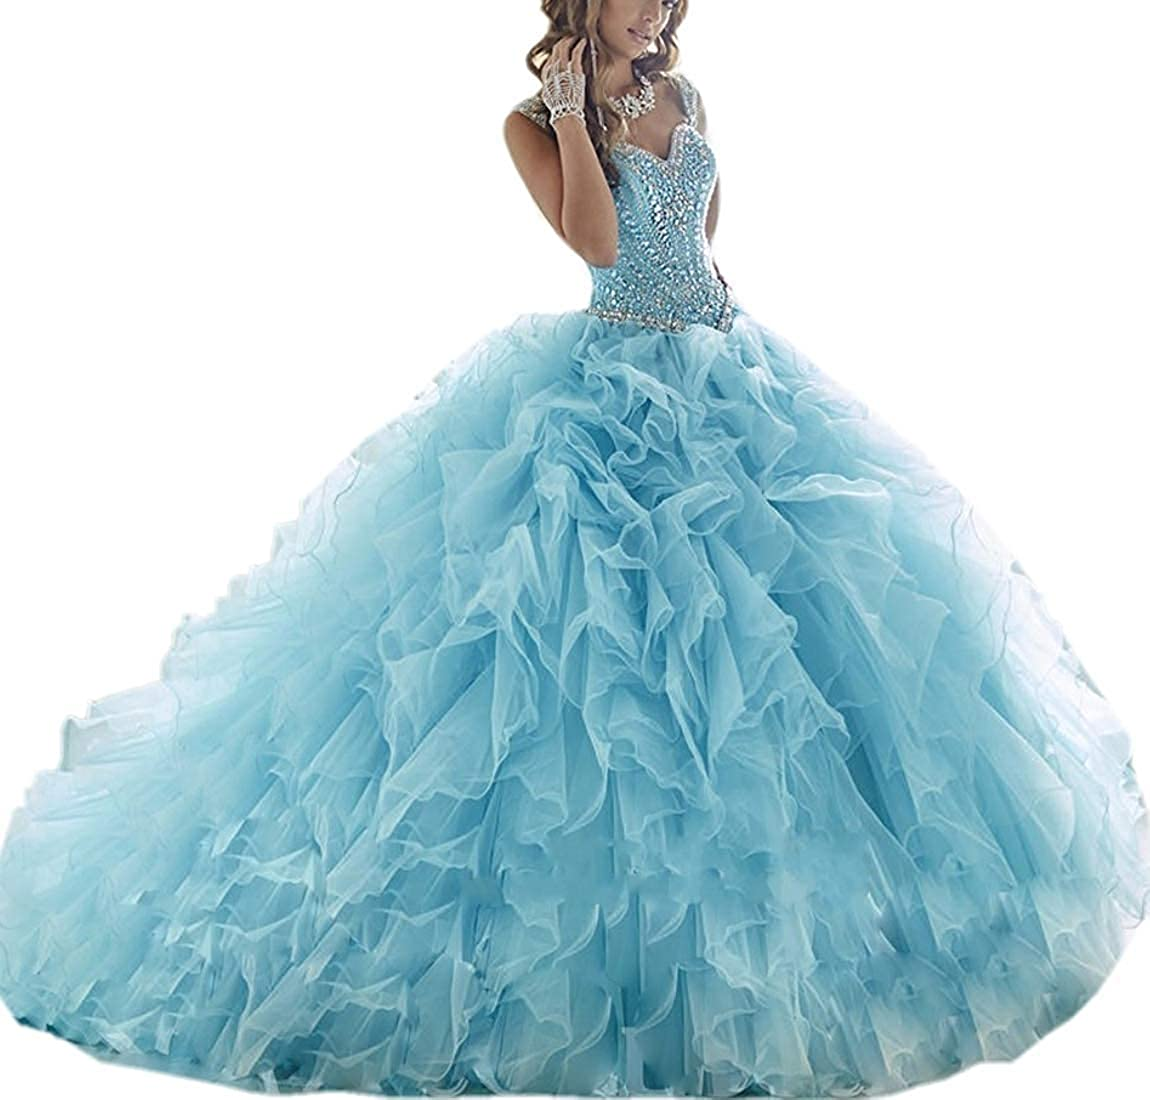 bluee ASBridal Quinceanera Dresses Long Prom Party Dress Sweet 16 Crystals Beads Formal Ball Gowns Orangza